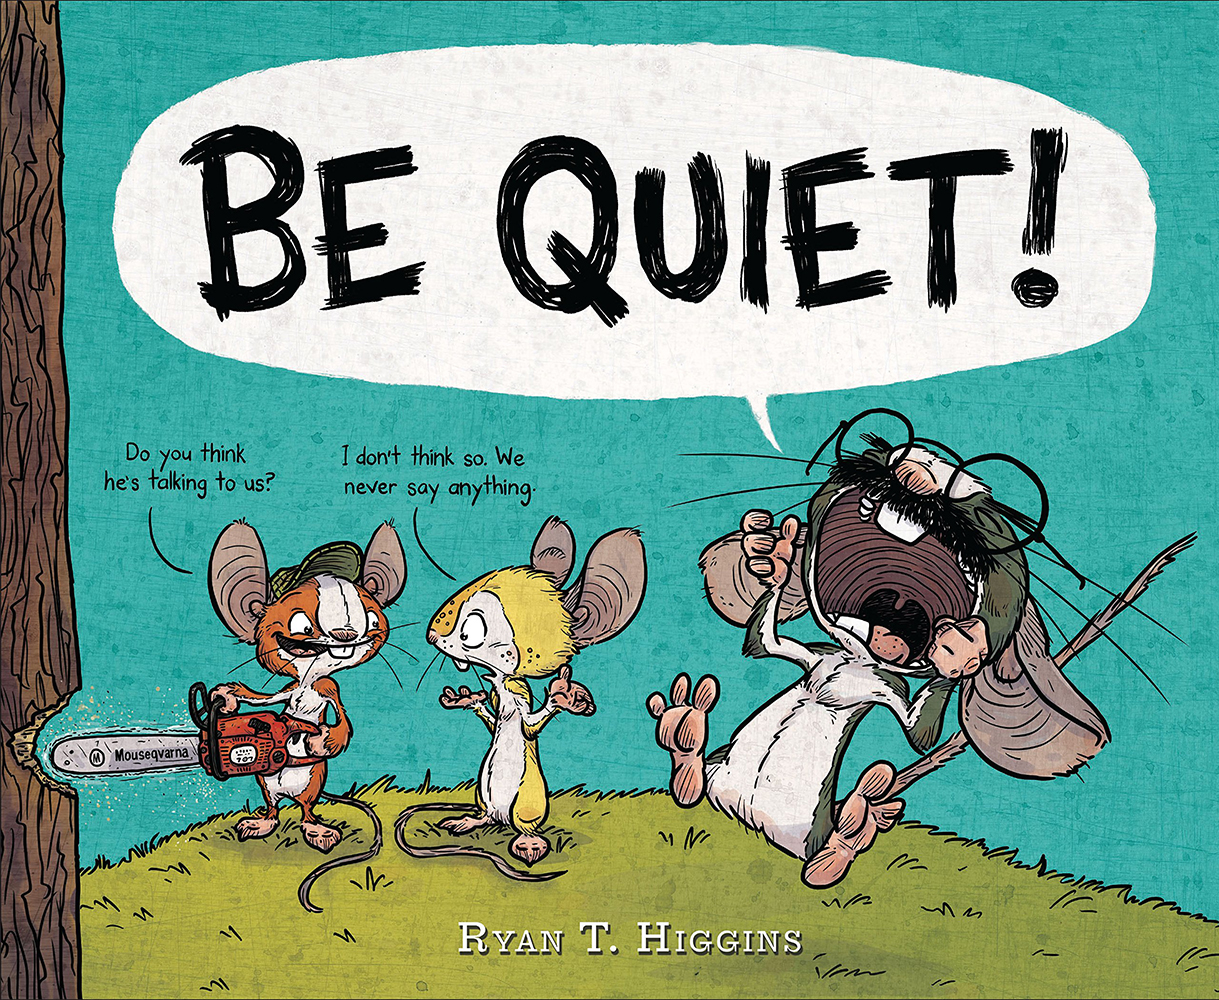 Higgins, Ryan T 2017_04 - BE QUIET - PB - RLM PR.jpg